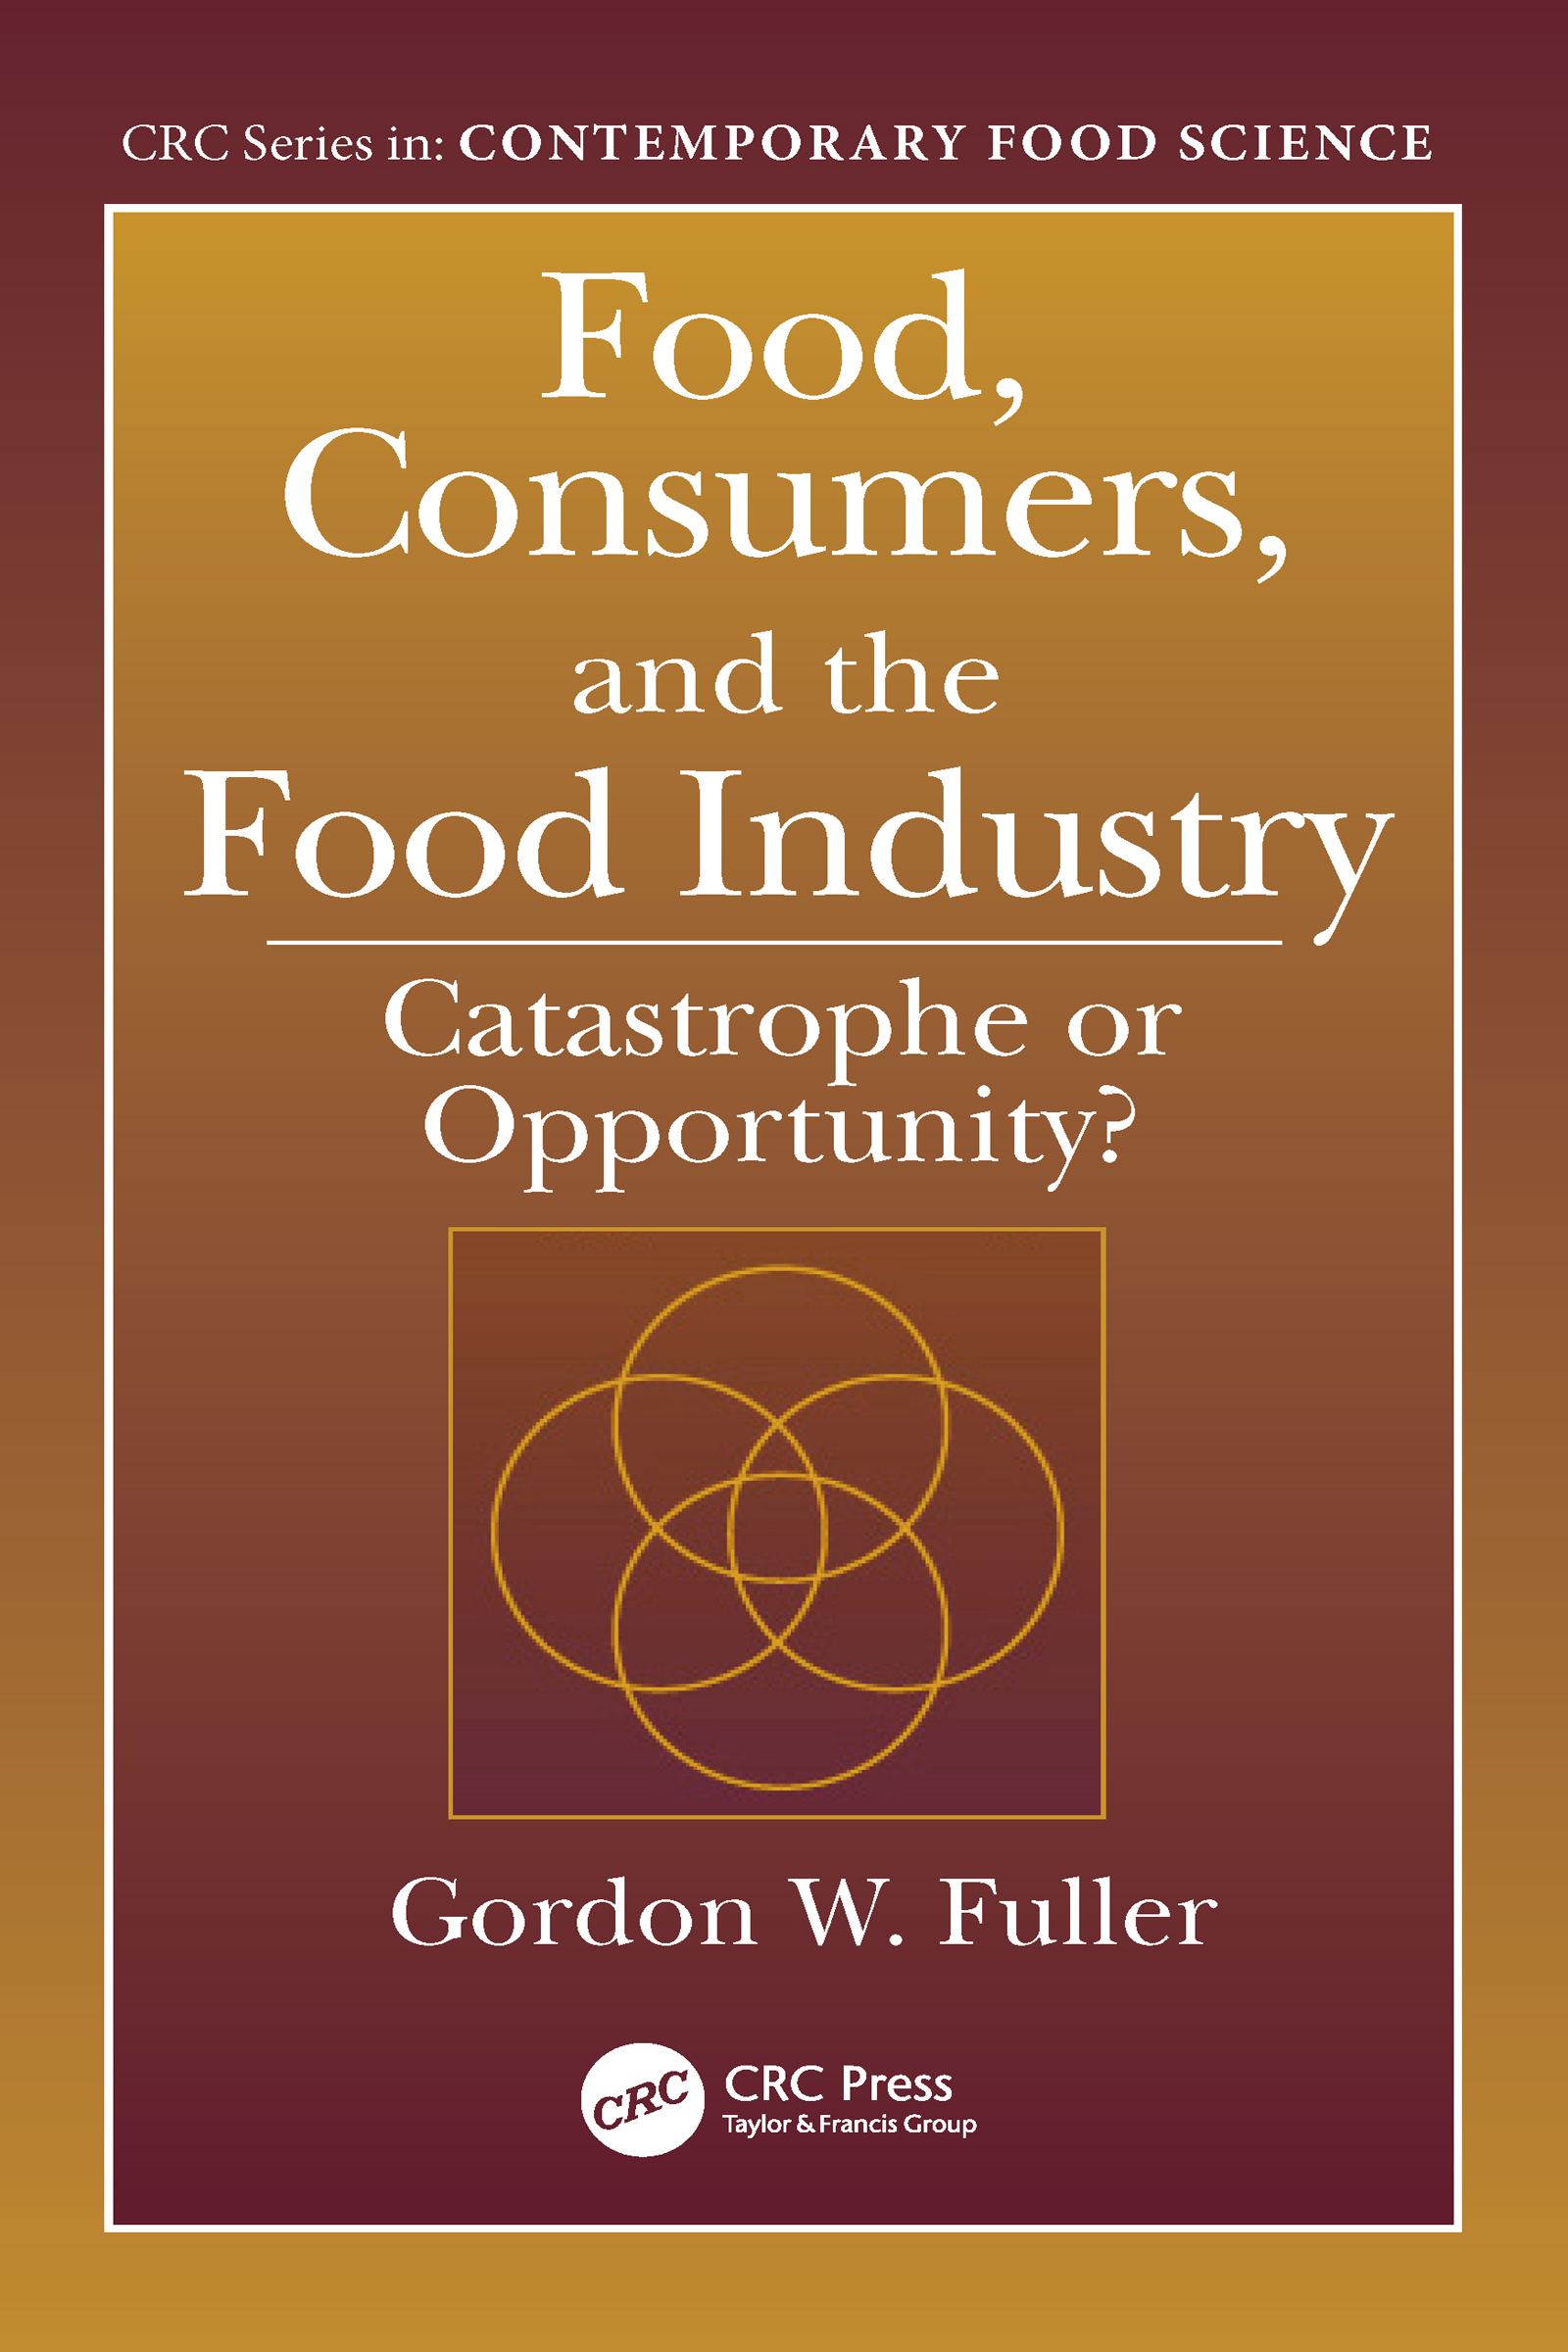 Food, Consumers, and the Food Industry: Catastrophe or Opportunity? book cover